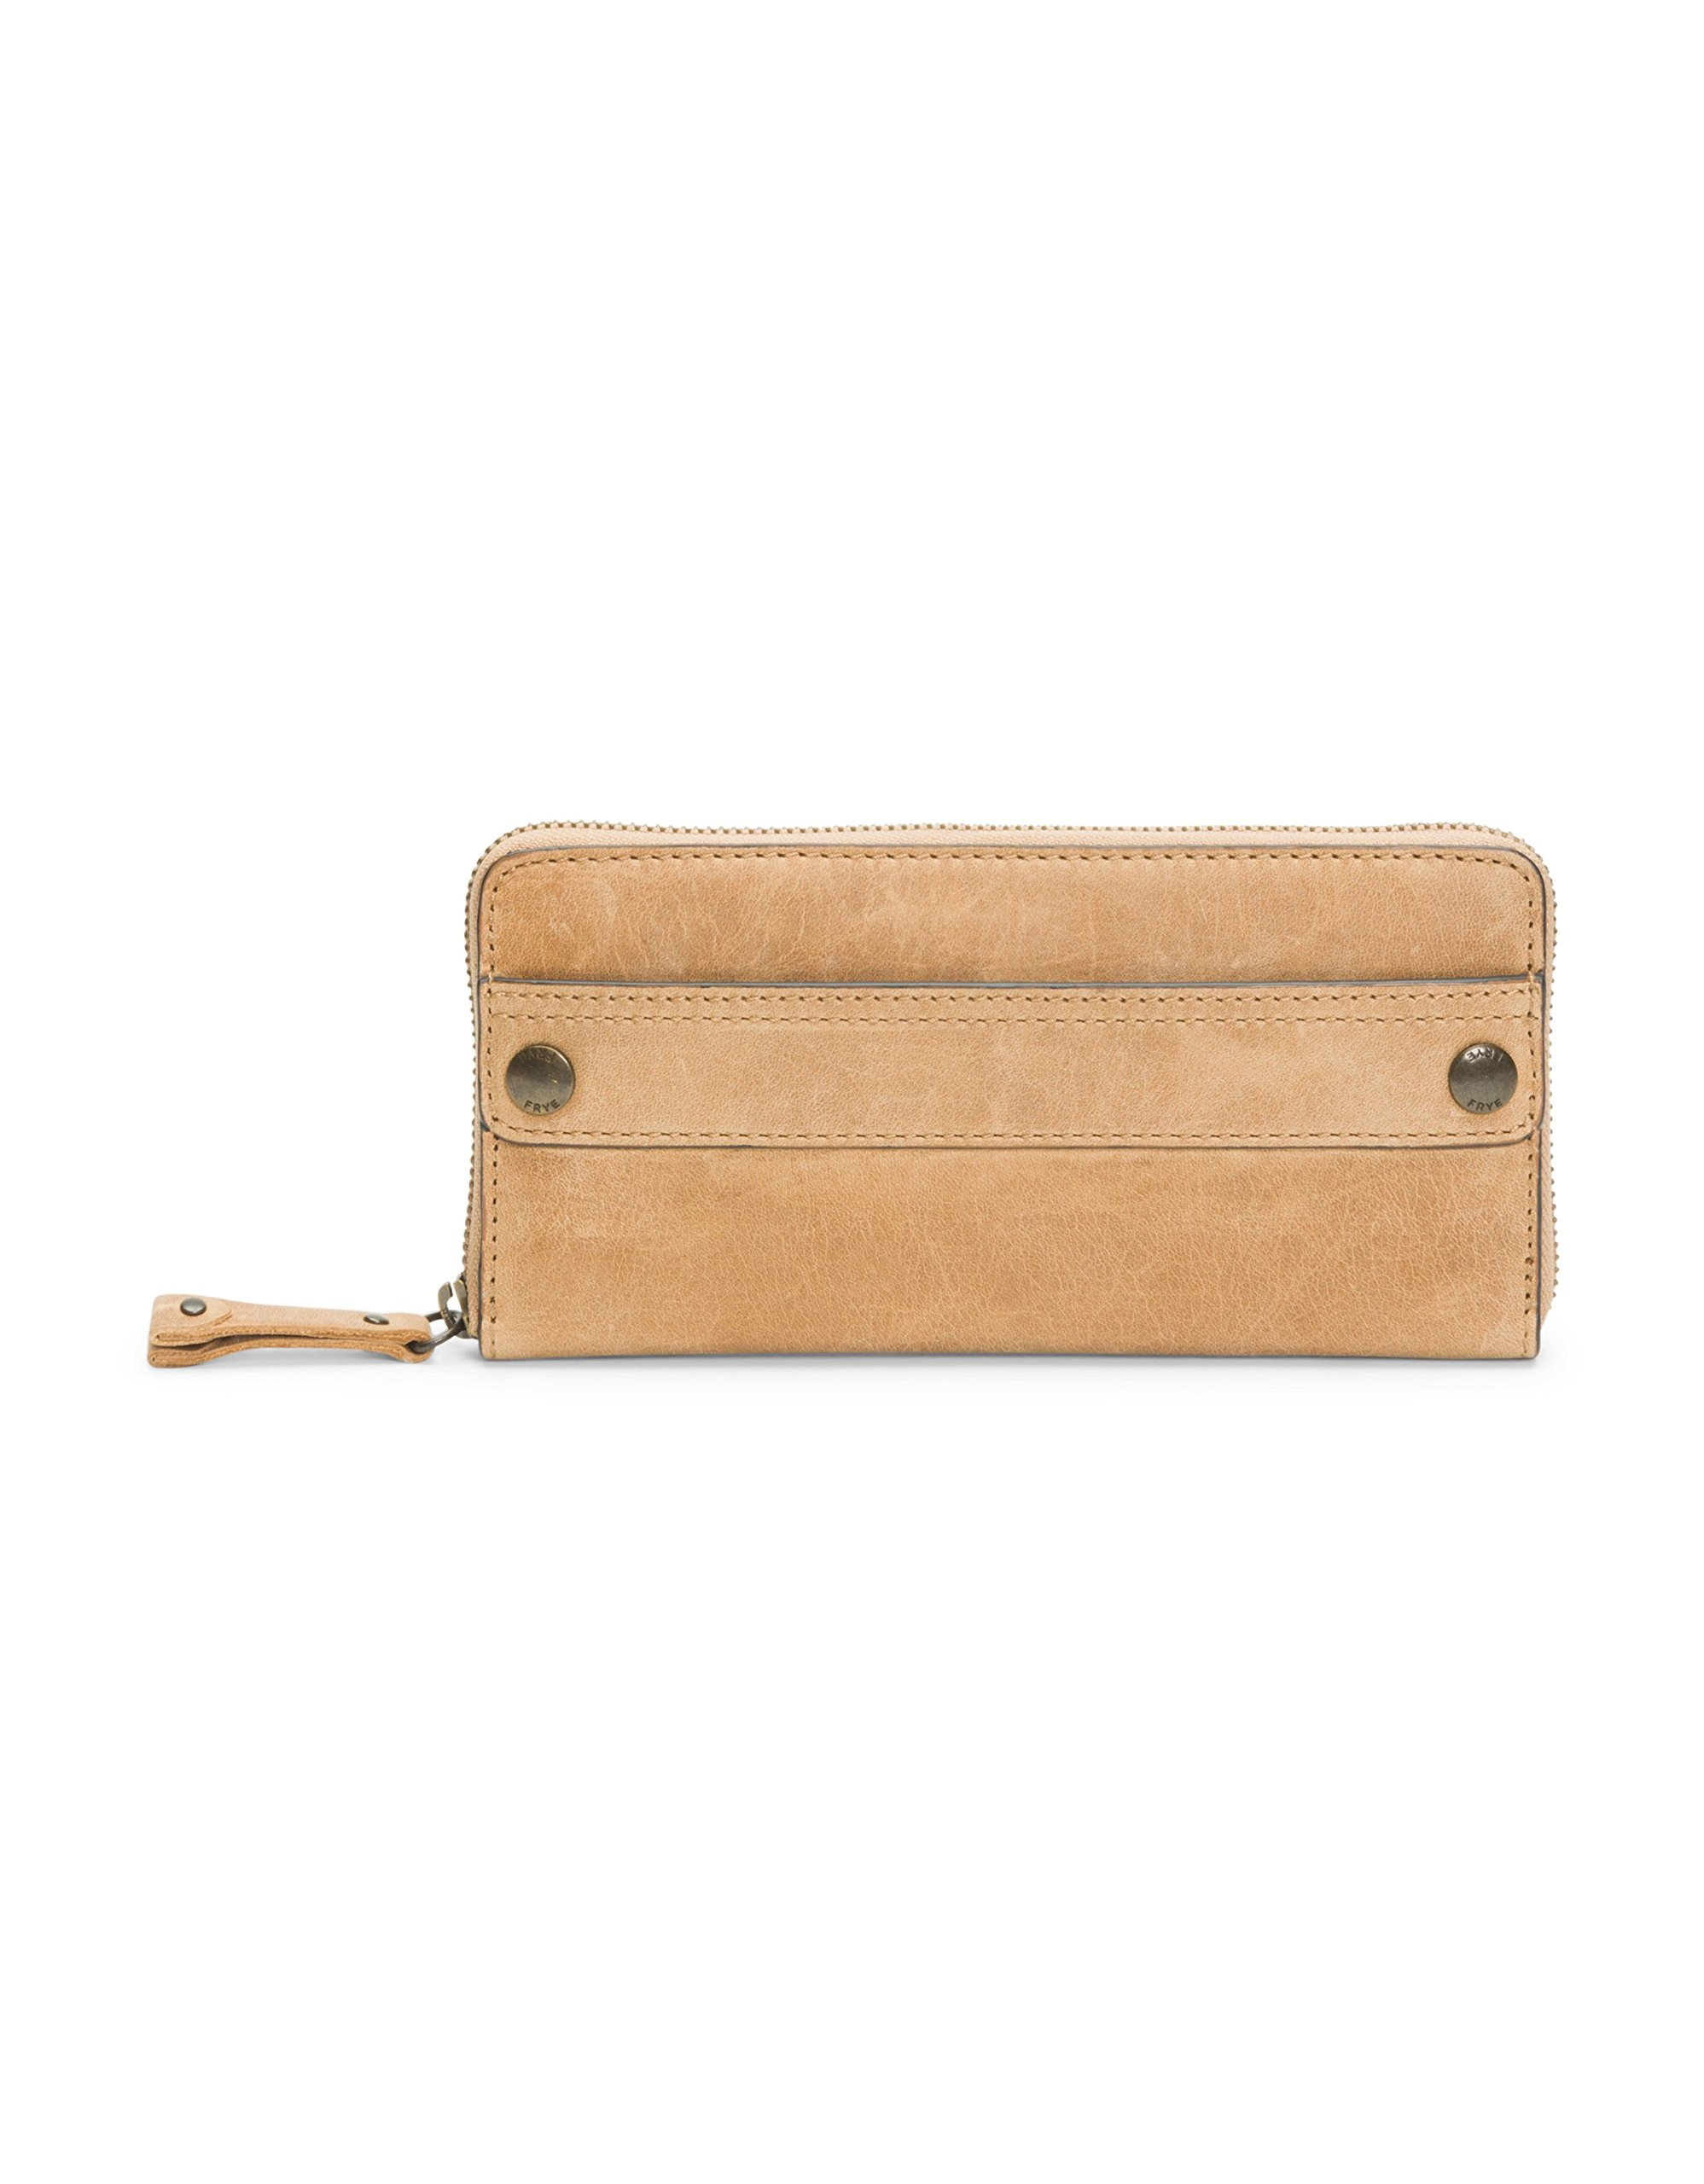 FRYE Melissa Zip Around Leather Wallet, Beige